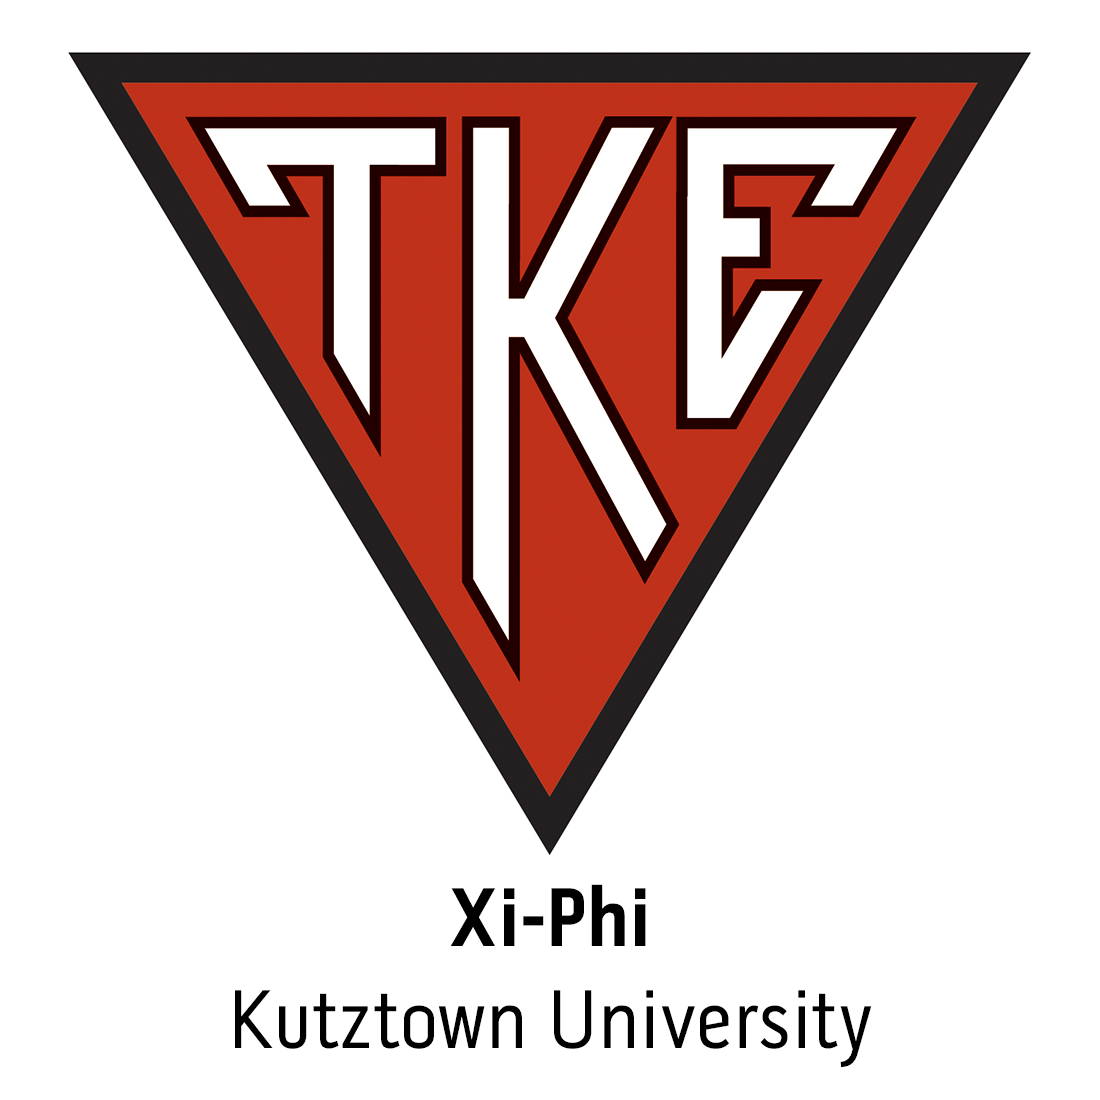 Xi-Phi Chapter at Kutztown University